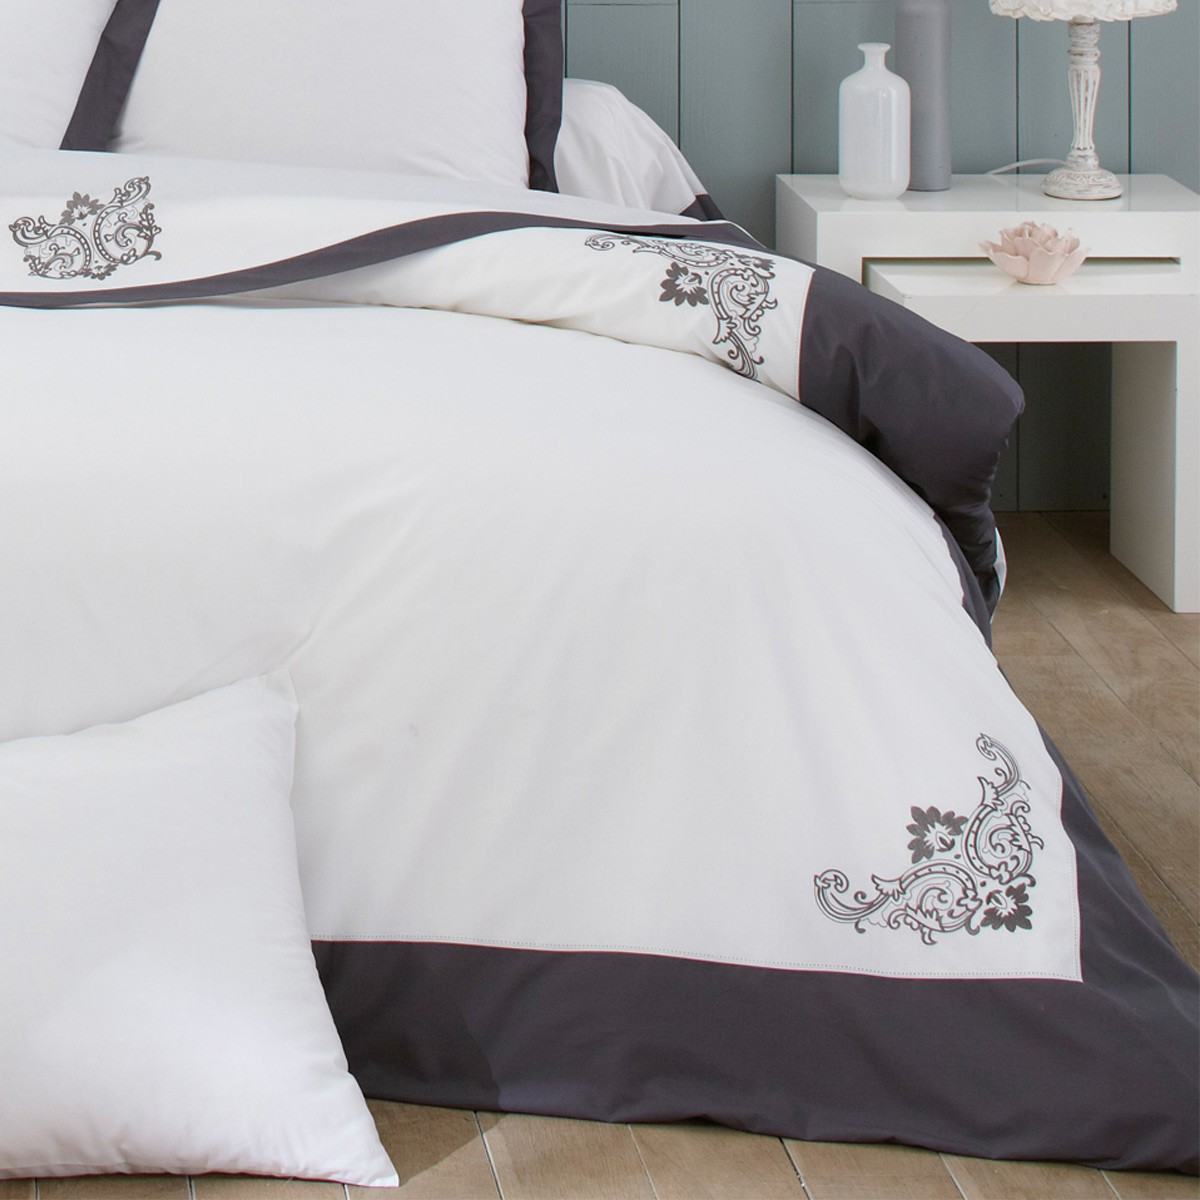 parure de lit percale embroidered percale bedlinen bed linen bedroom zara home lithuania. Black Bedroom Furniture Sets. Home Design Ideas